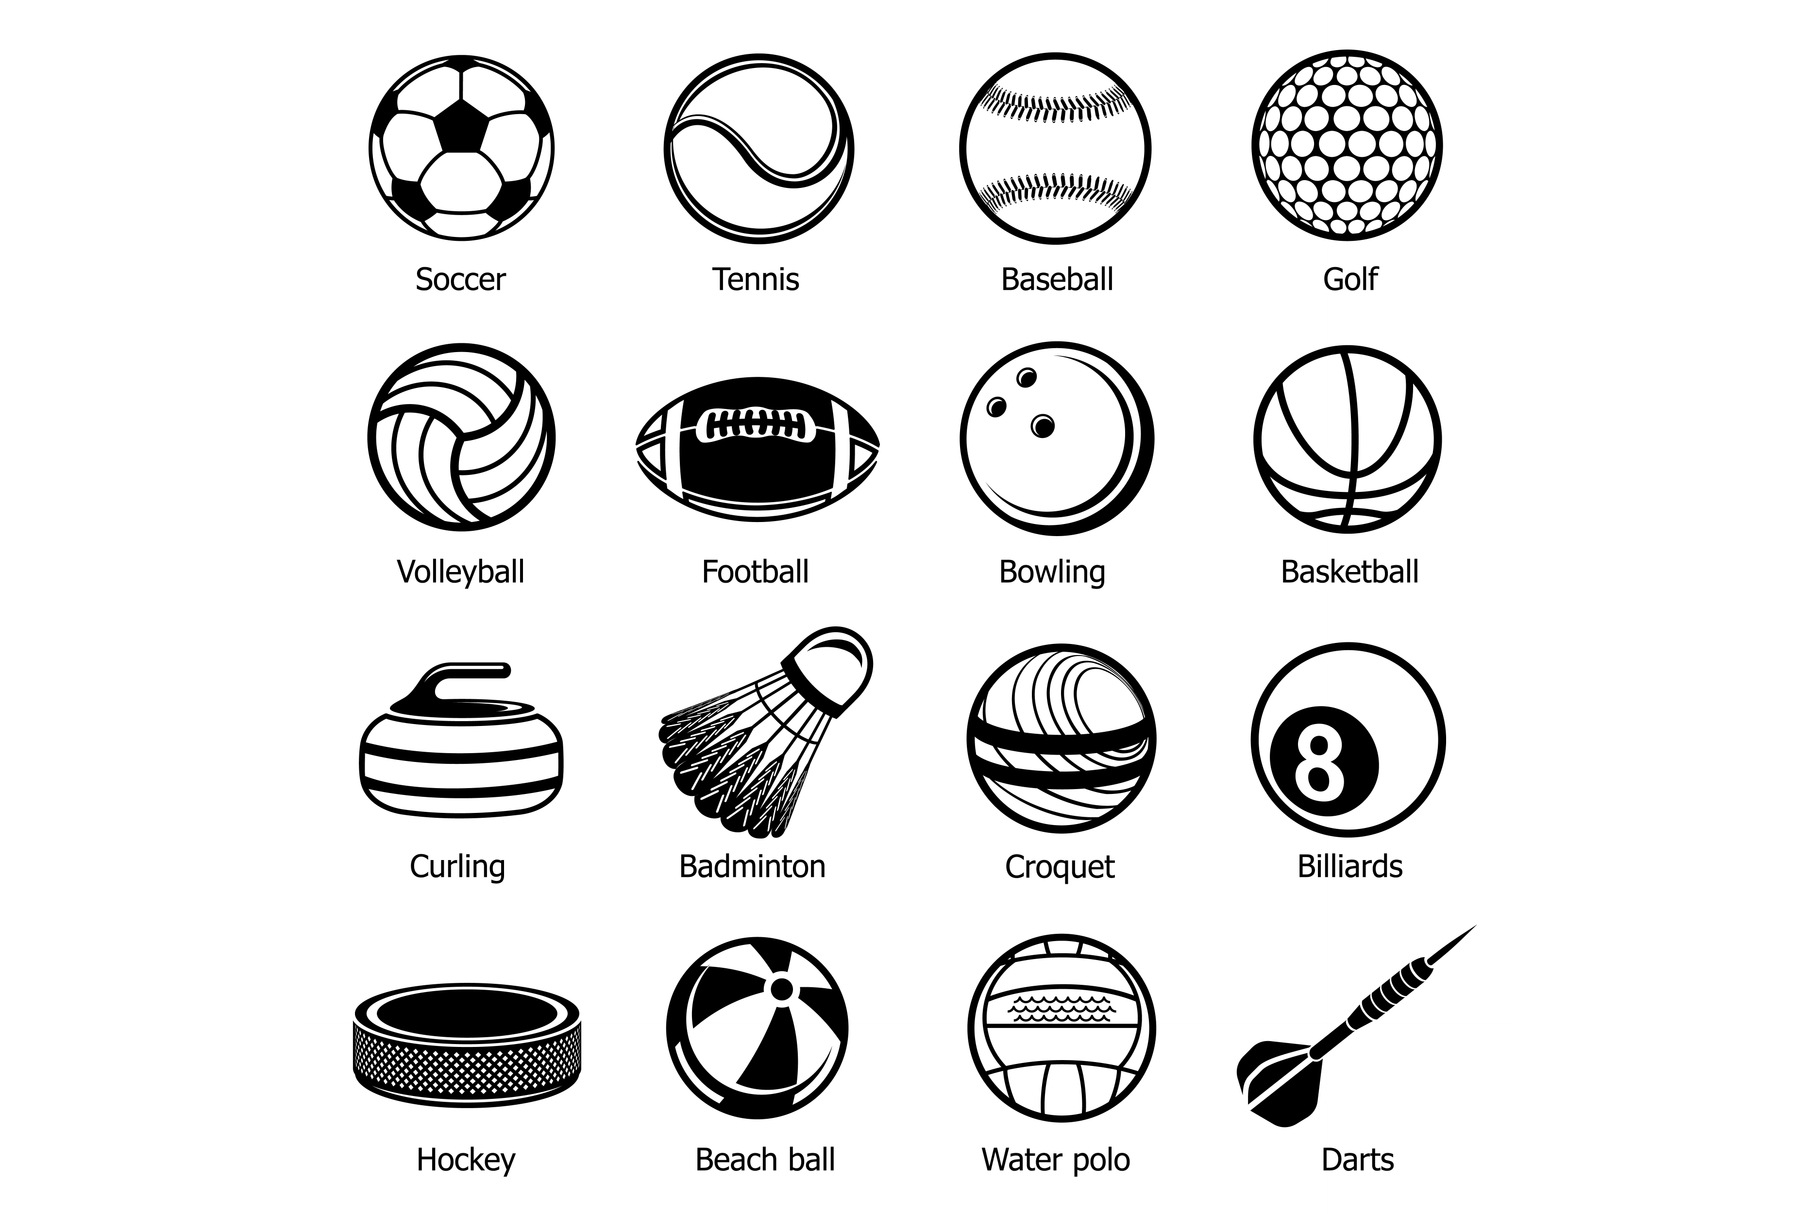 Sport balls equipment icons set, simple style example image 1